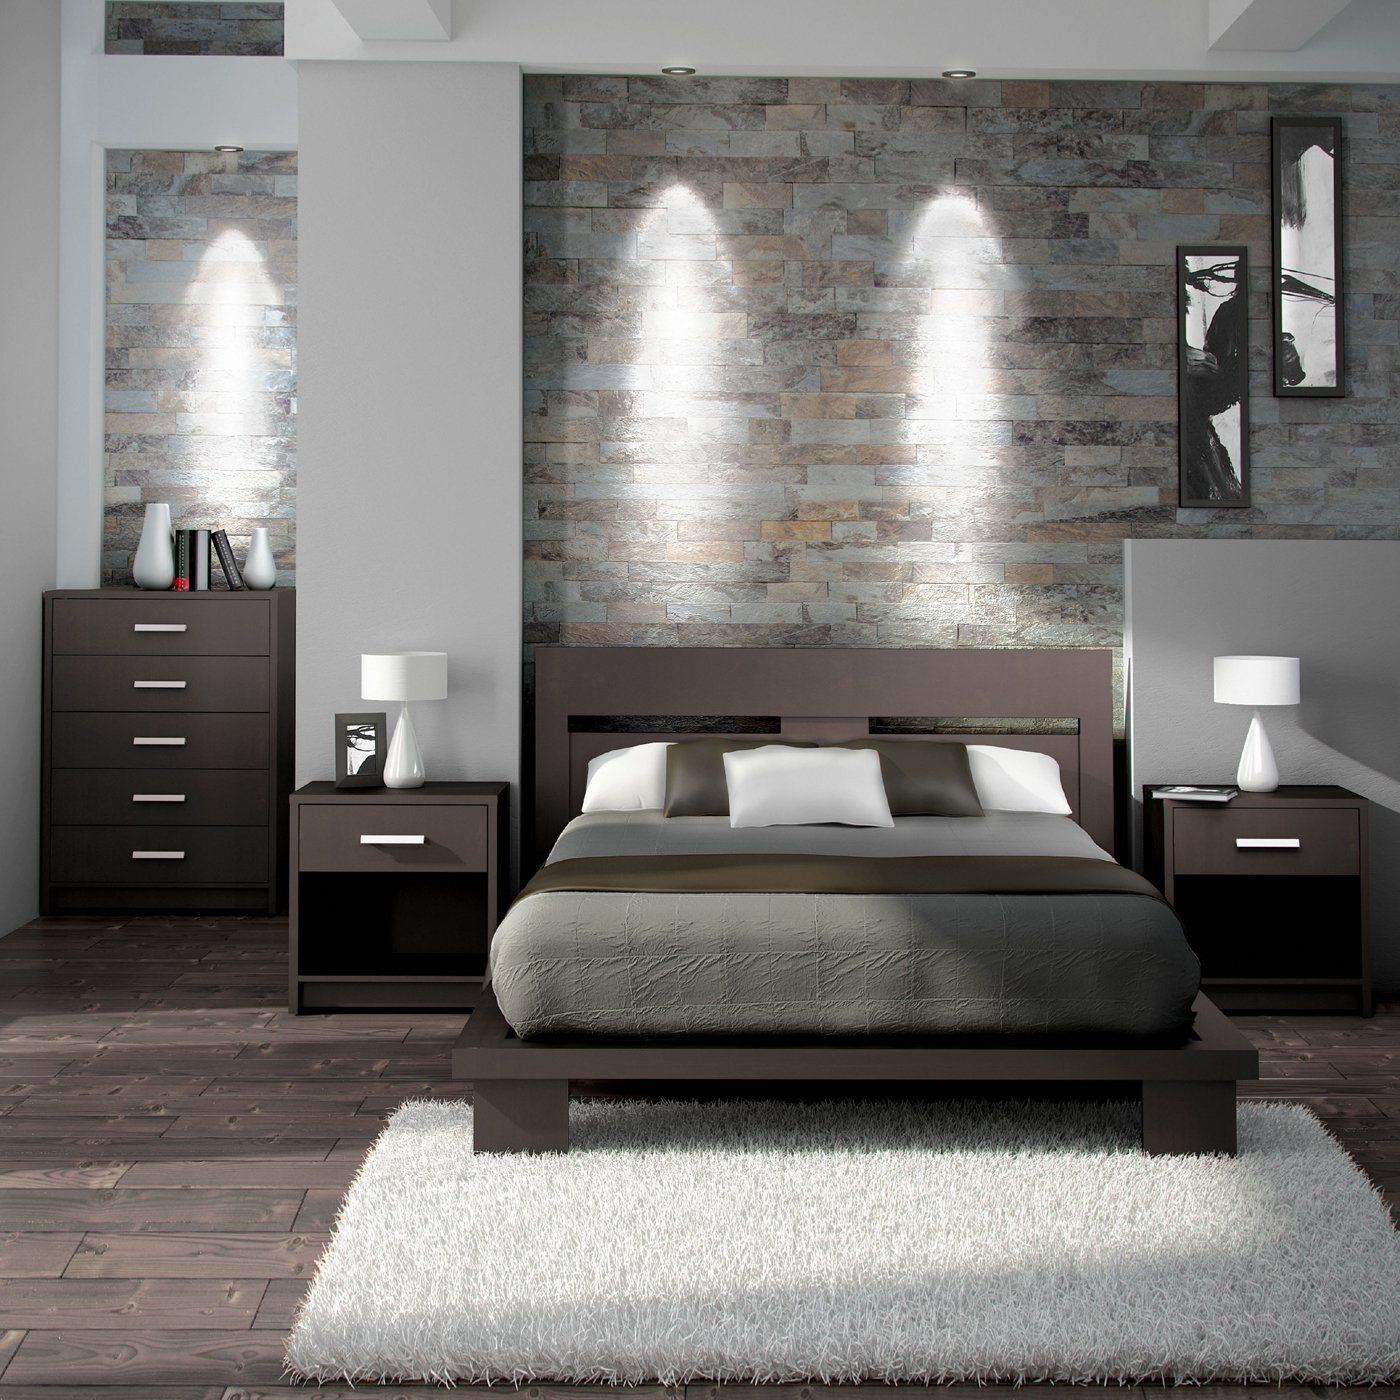 A Simple And Modern Bedroom Set In Espresso Brown It S Made With 100 Recycled Cardboard